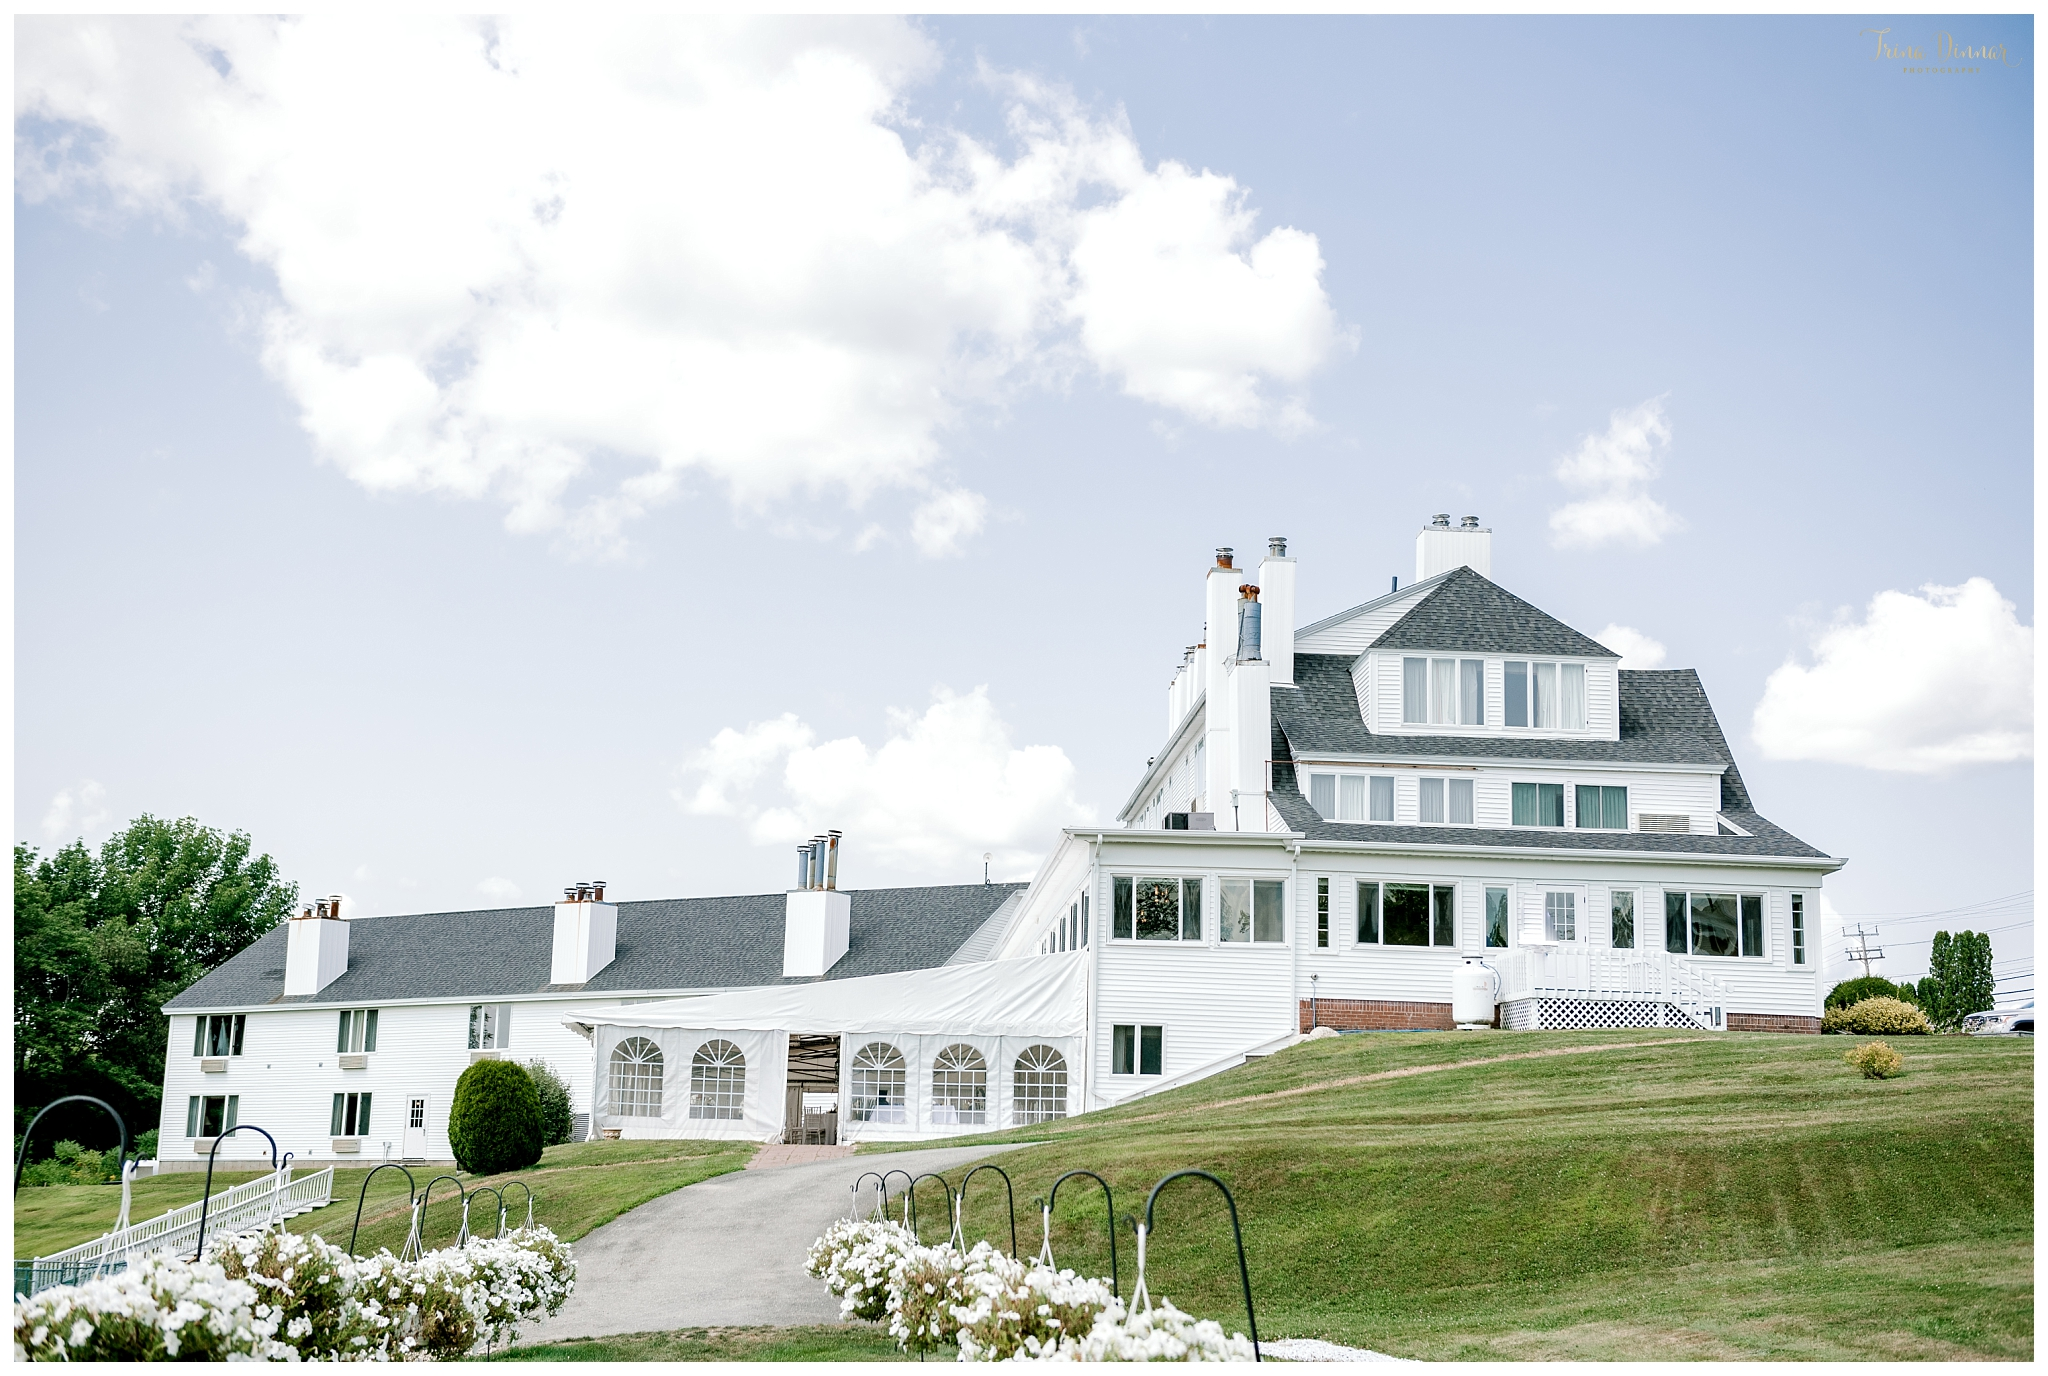 The Lucerne Inn is a Maine Wedding Venue located in Dedham, just outside of Bangor.